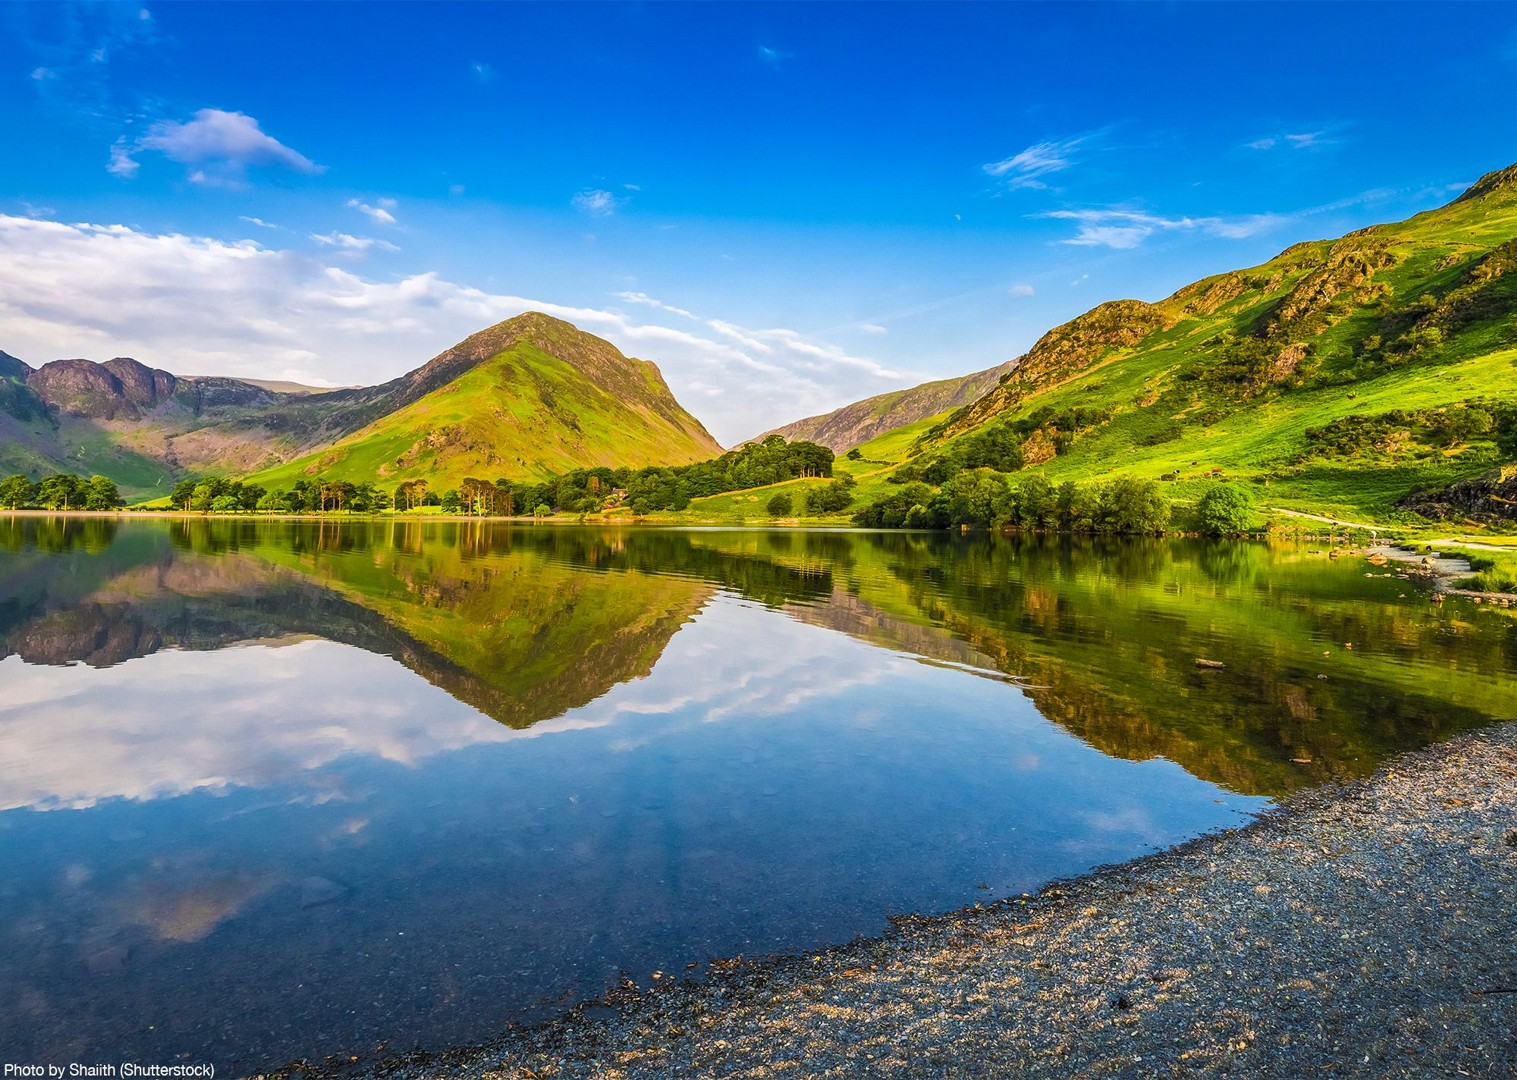 local-lakes-skiddaw-blencartha-mountains-biking-tour-skedaddle.jpg - UK - Lake District - Derwent Water - Guided Leisure Cycling Holiday - Leisure Cycling